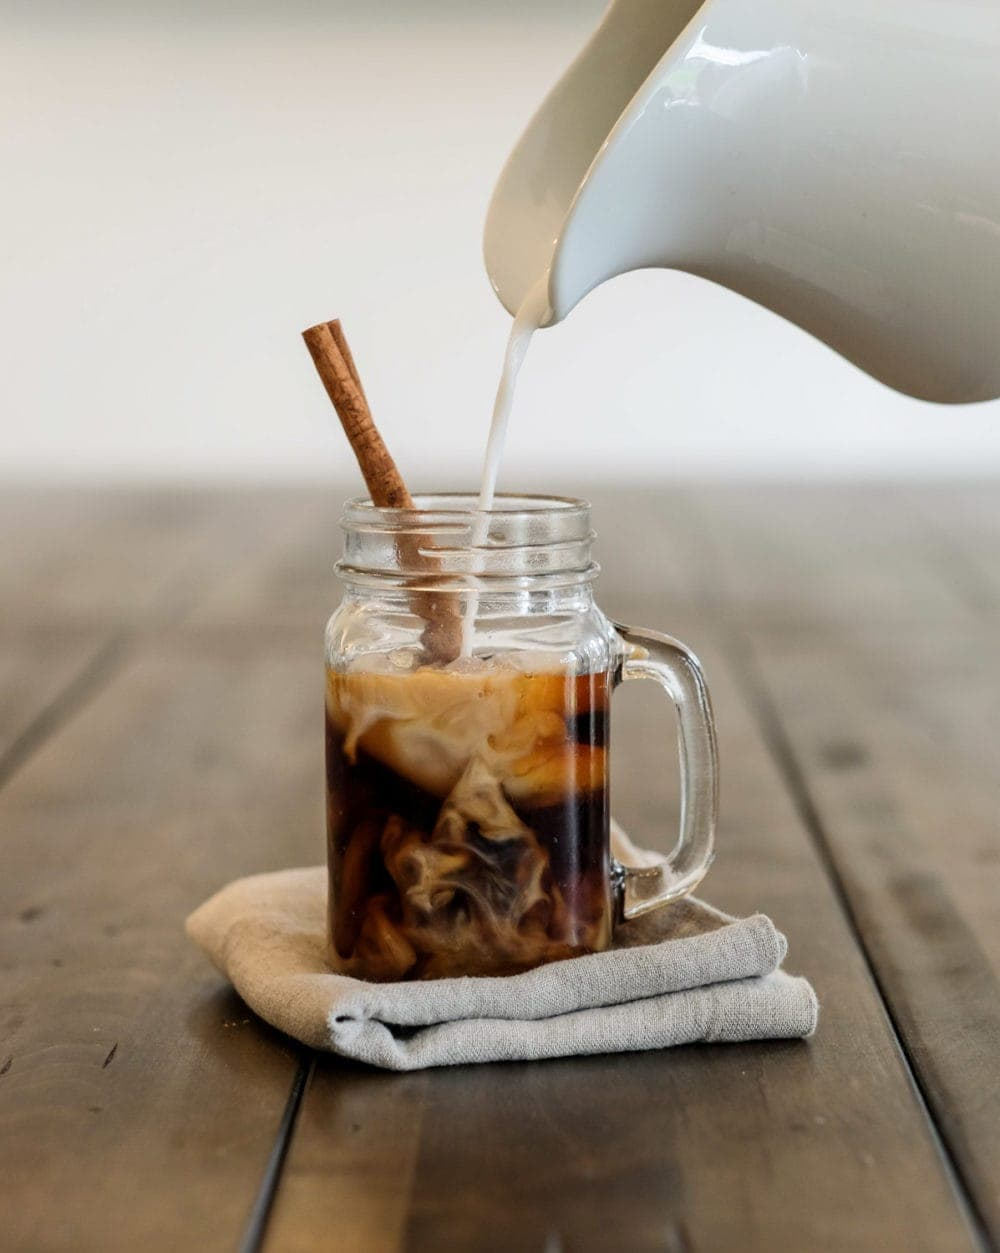 pouring cream into cold brew coffee